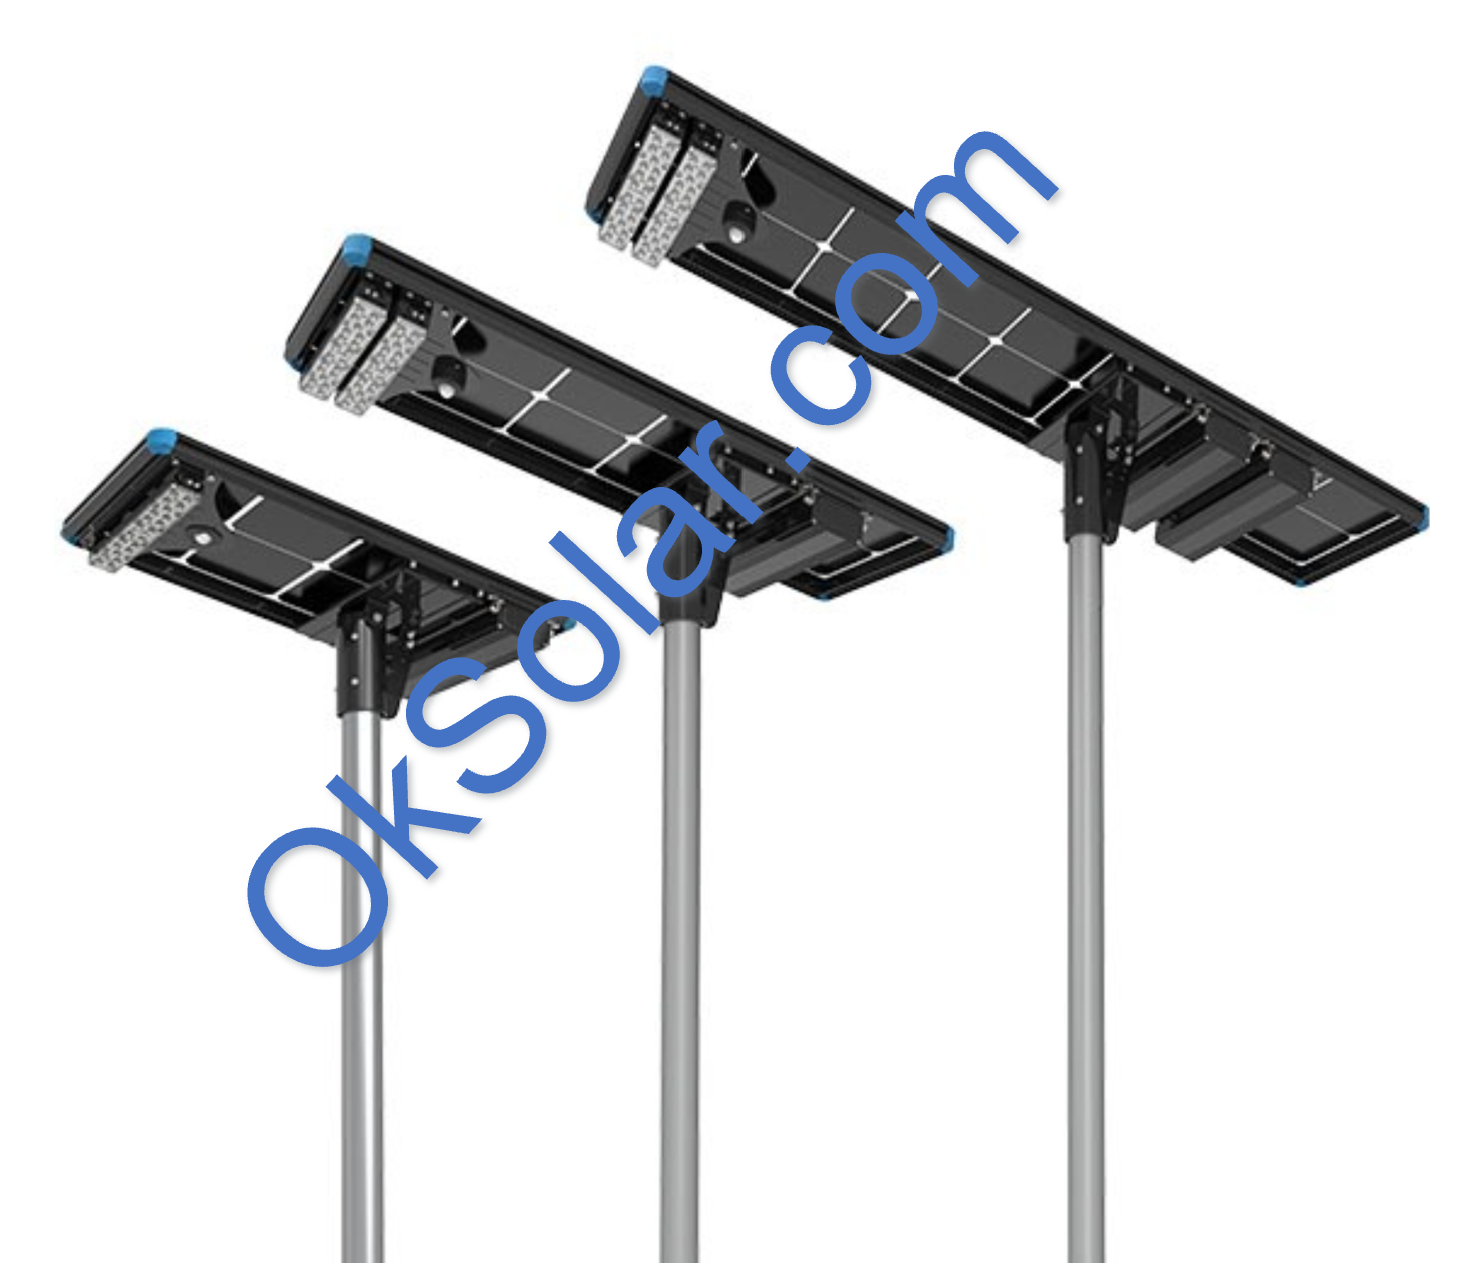 All in One OkSolar IQLED Street Light, Solar Street Light, All-in-One Solar Street Light | Solar LED Light | Solar LED Street Light | Solar Parking lot light | Perimeter Security Lighting | Solar Light Security Fence Smart Human Senso